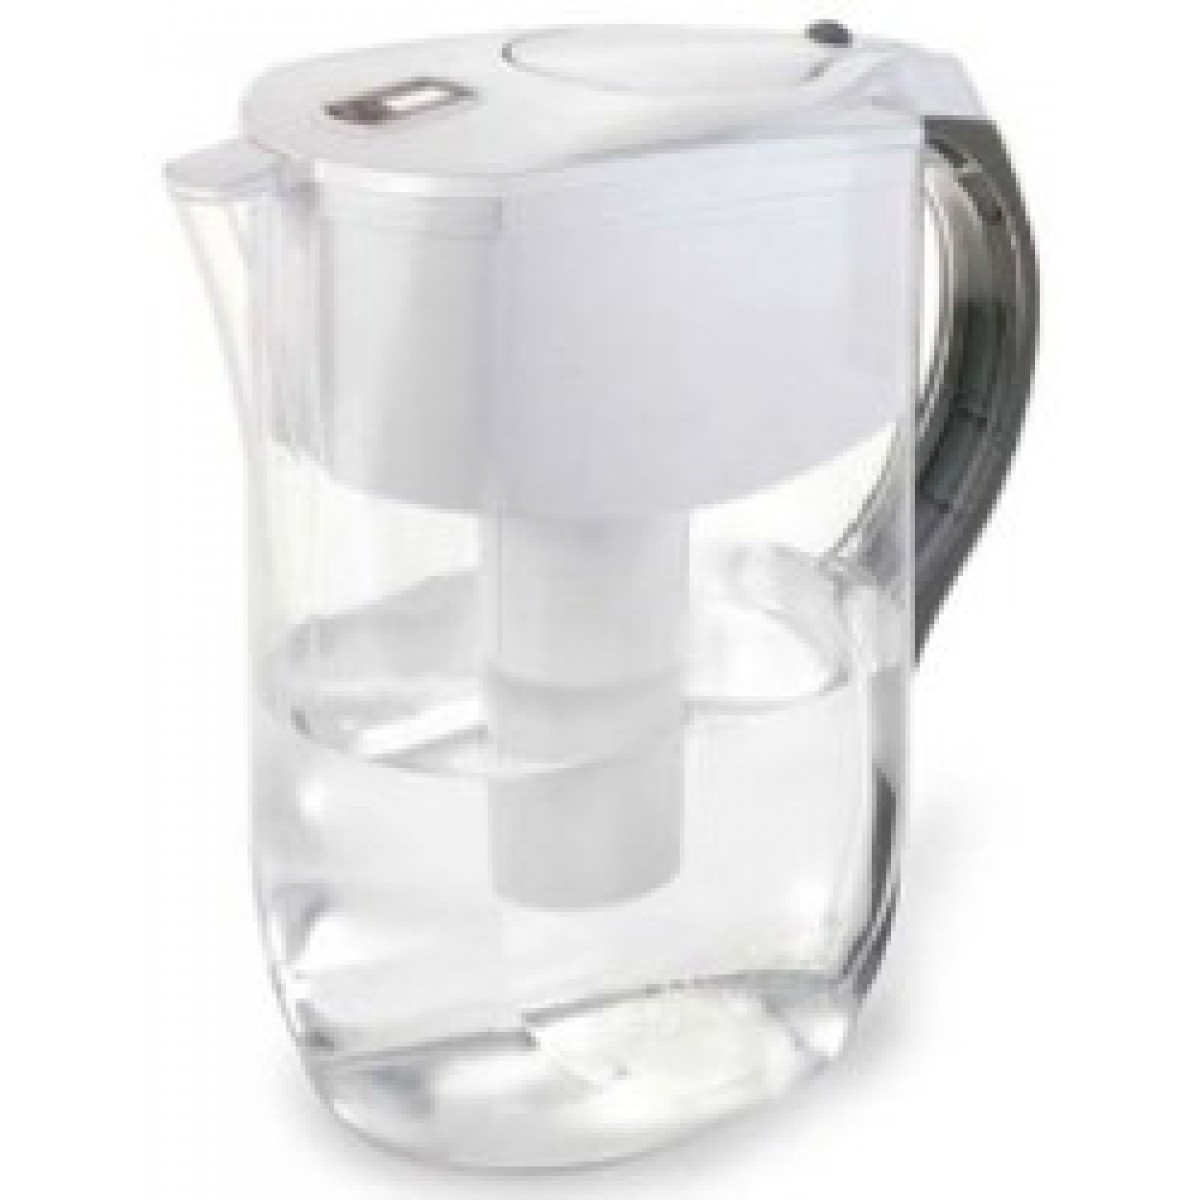 weakness analysis of brita water filters Brita manufactures the pt (pour-through) water filter through which they  the  strength is being market leader in pitcher filter (as shown in exhibit 12, 509 of   a swot analysis summarises the key issues from an analysis of the business.